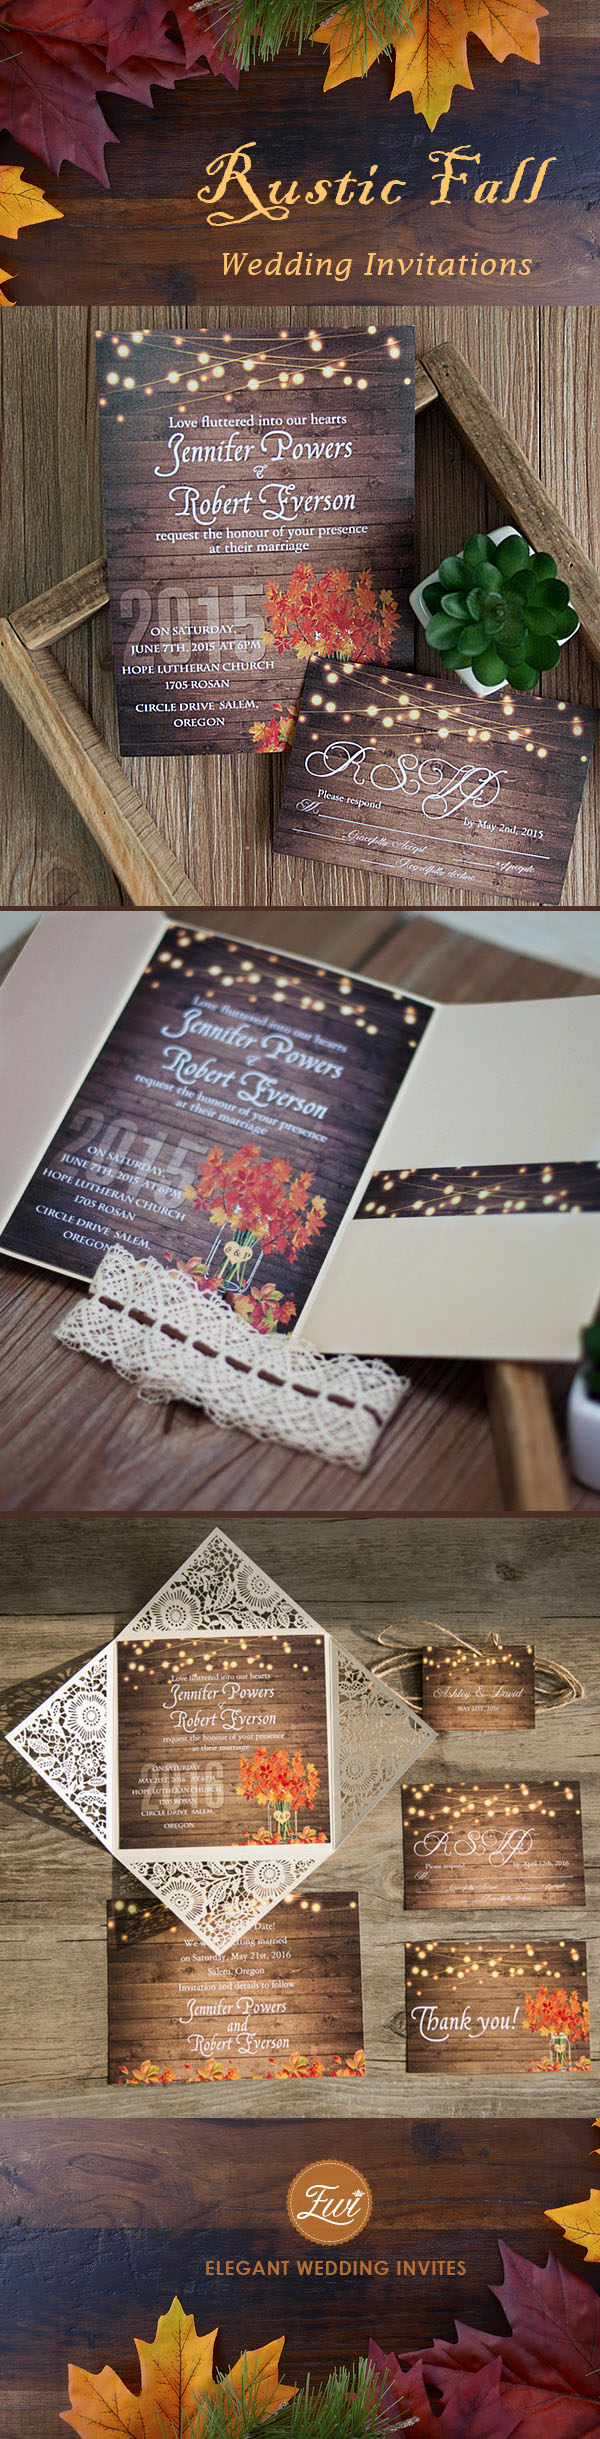 rustic fall wedding invitations